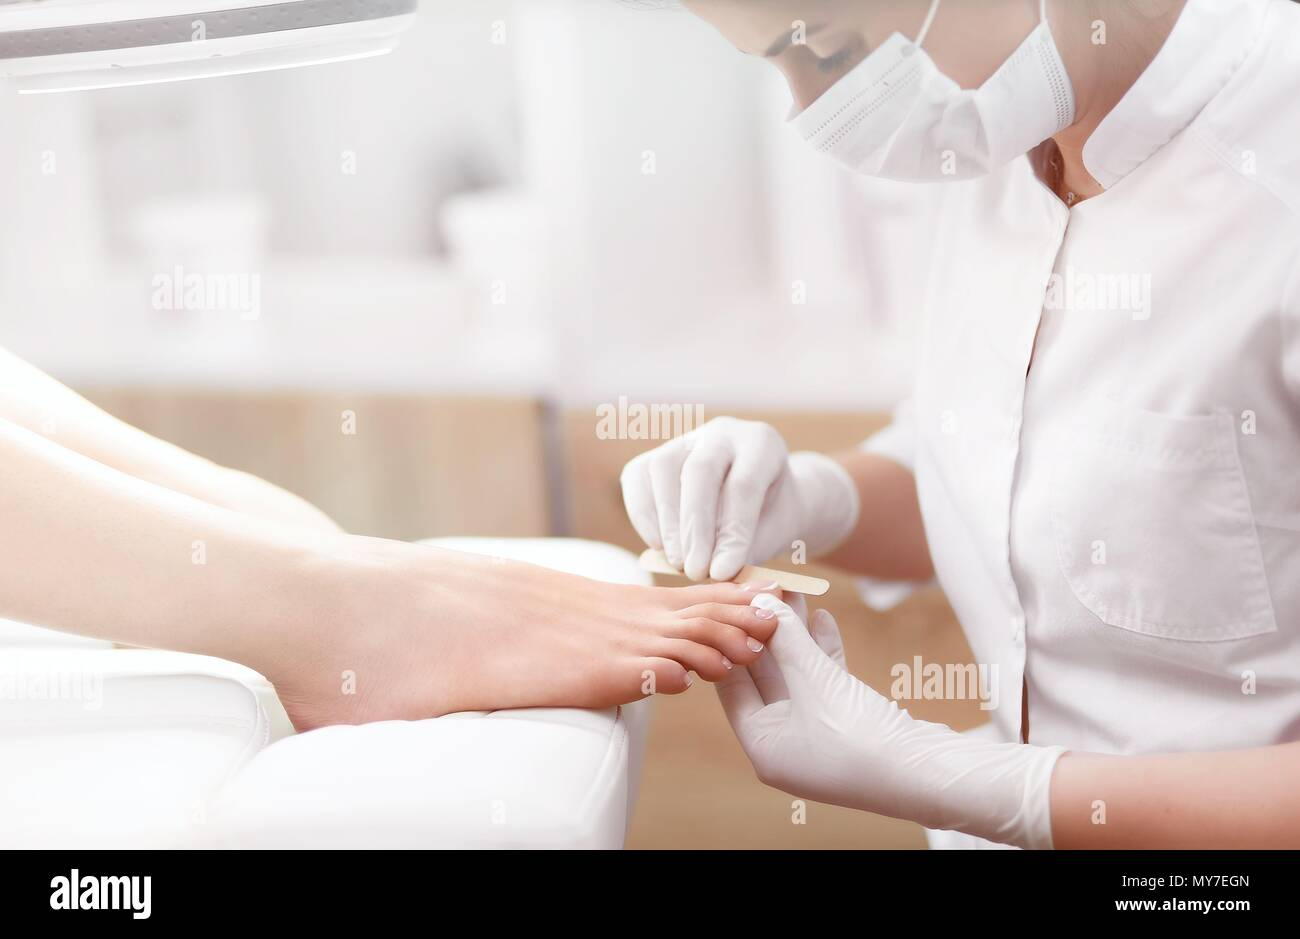 Nail artist in beauty salon making french pedicure for clients feet. Professional in mask on face polish nails by tool. Concept of nails, feet health  - Stock Image